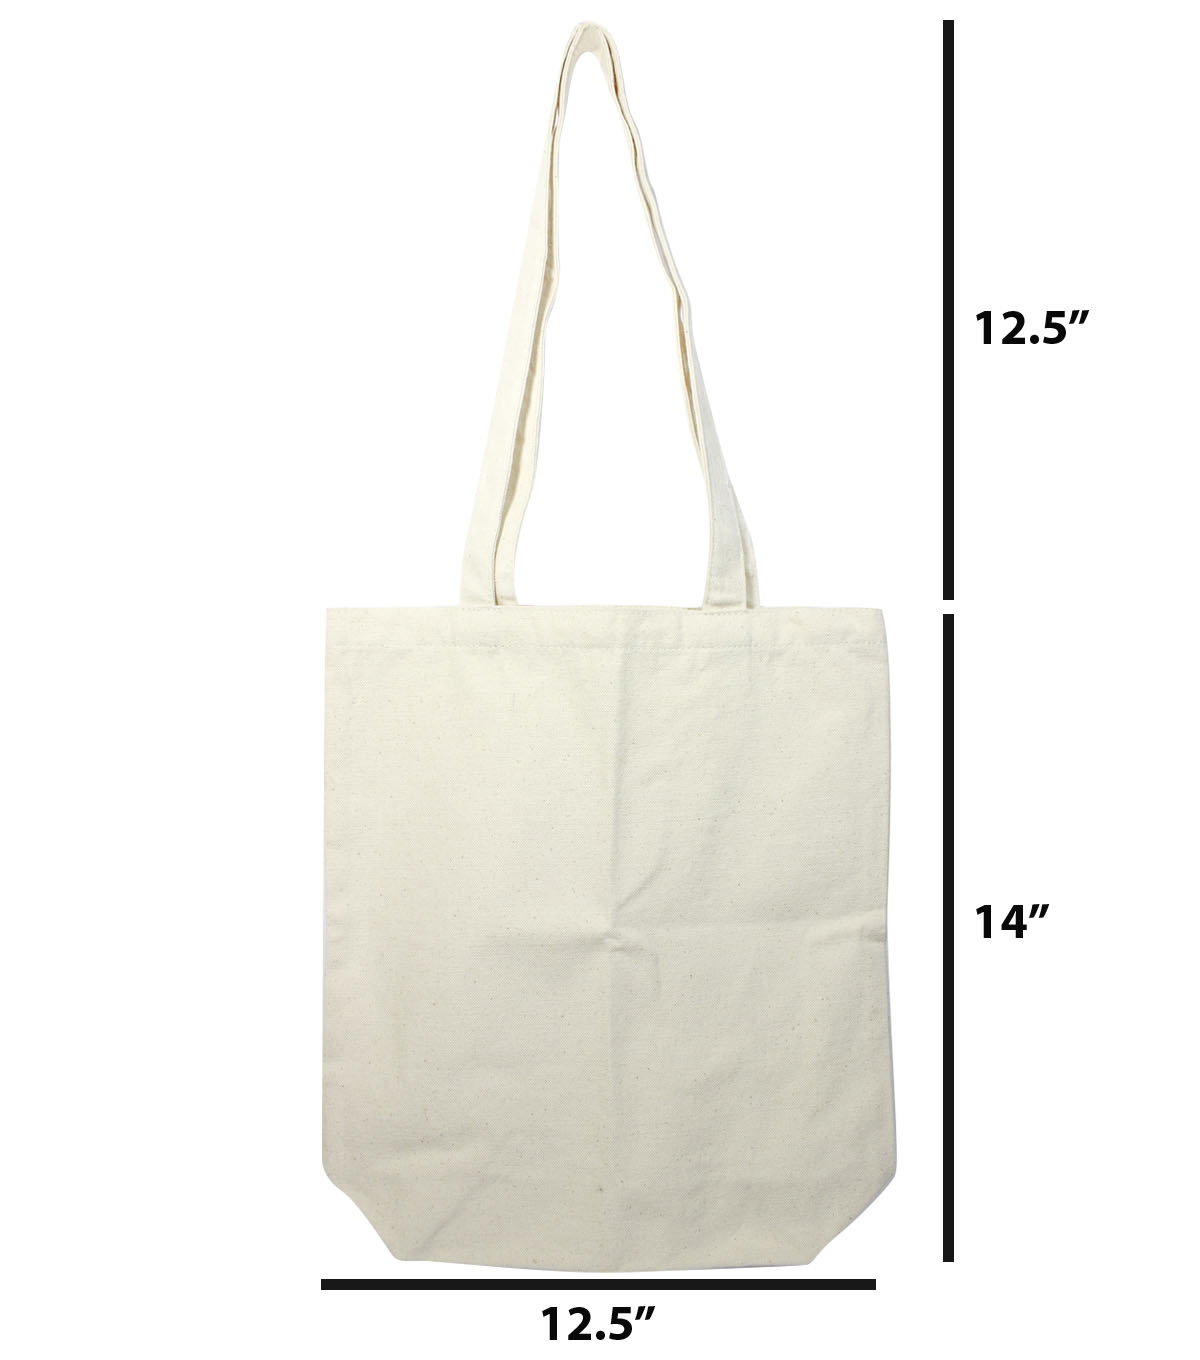 Totes Adorbs Large Canvas Tote